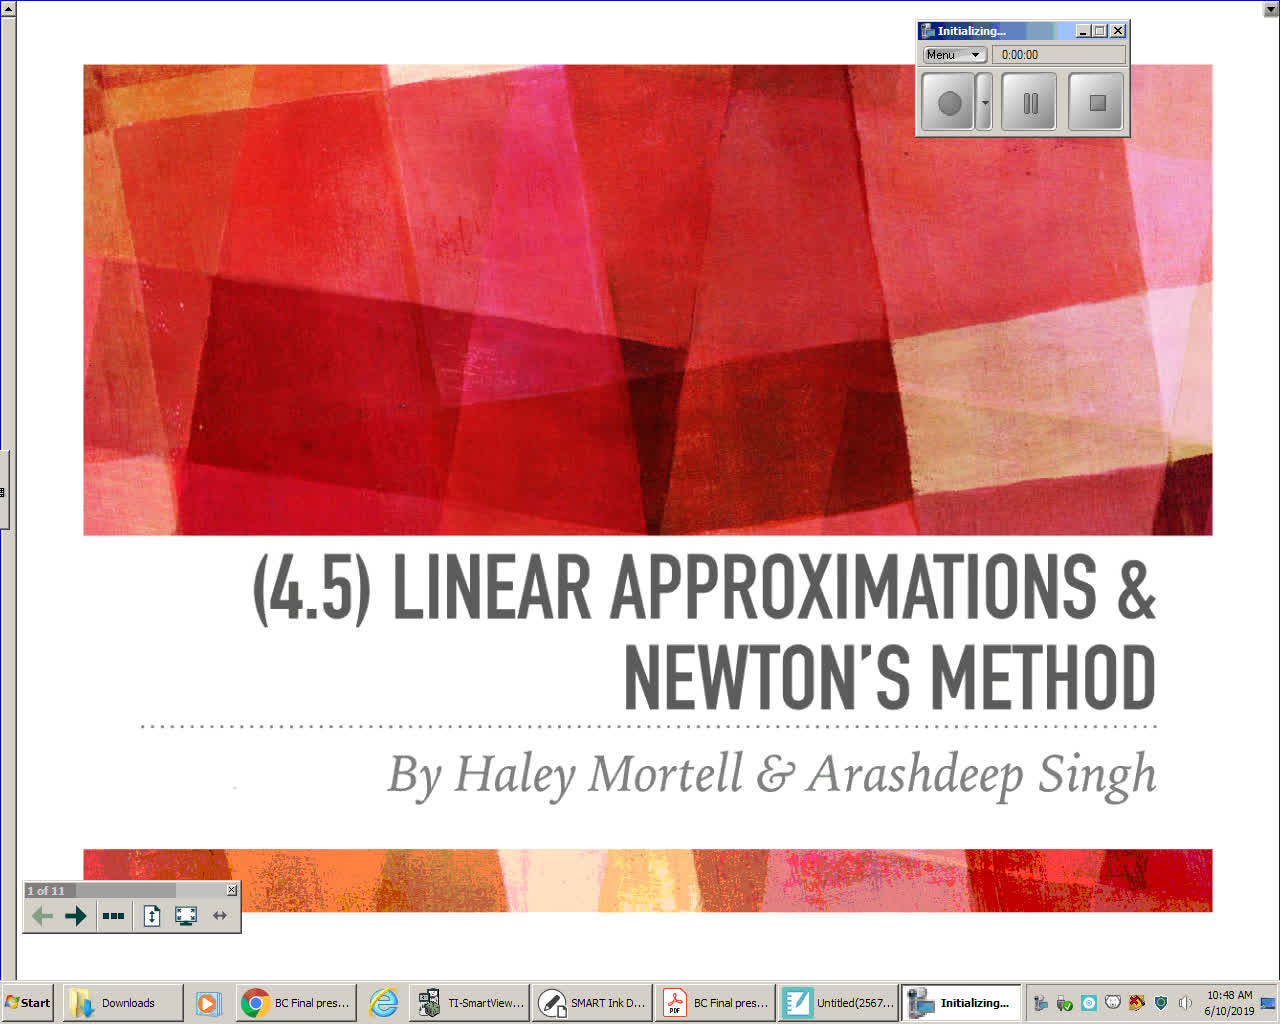 Linearization and Newton's Method